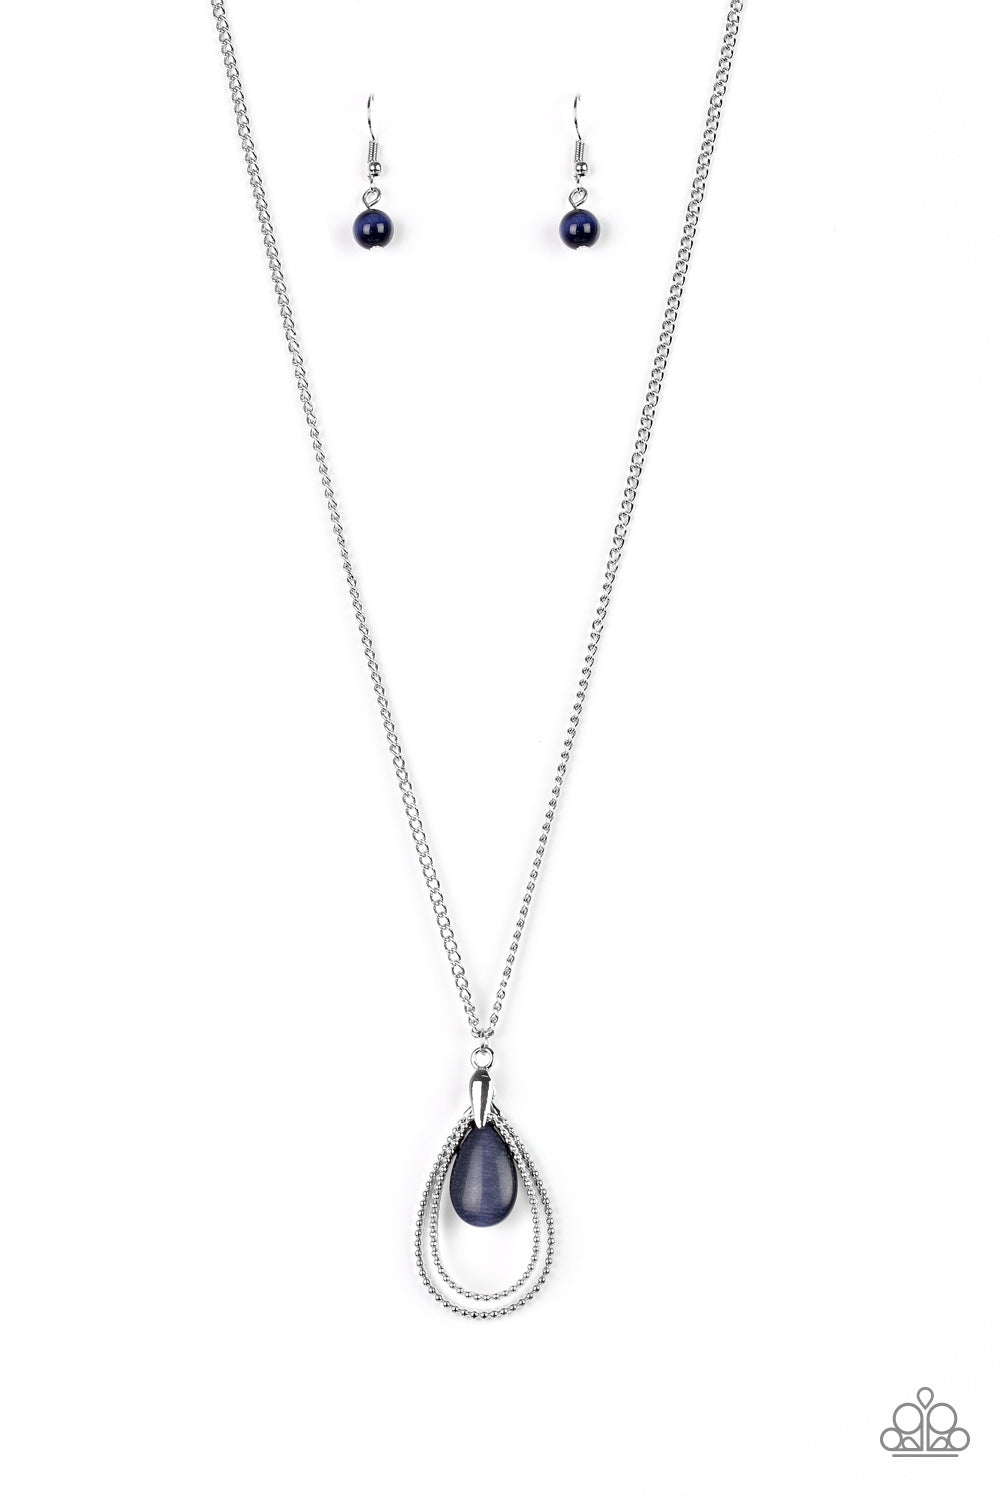 Paparazzi Teardrop Tranquility - Blue Necklace